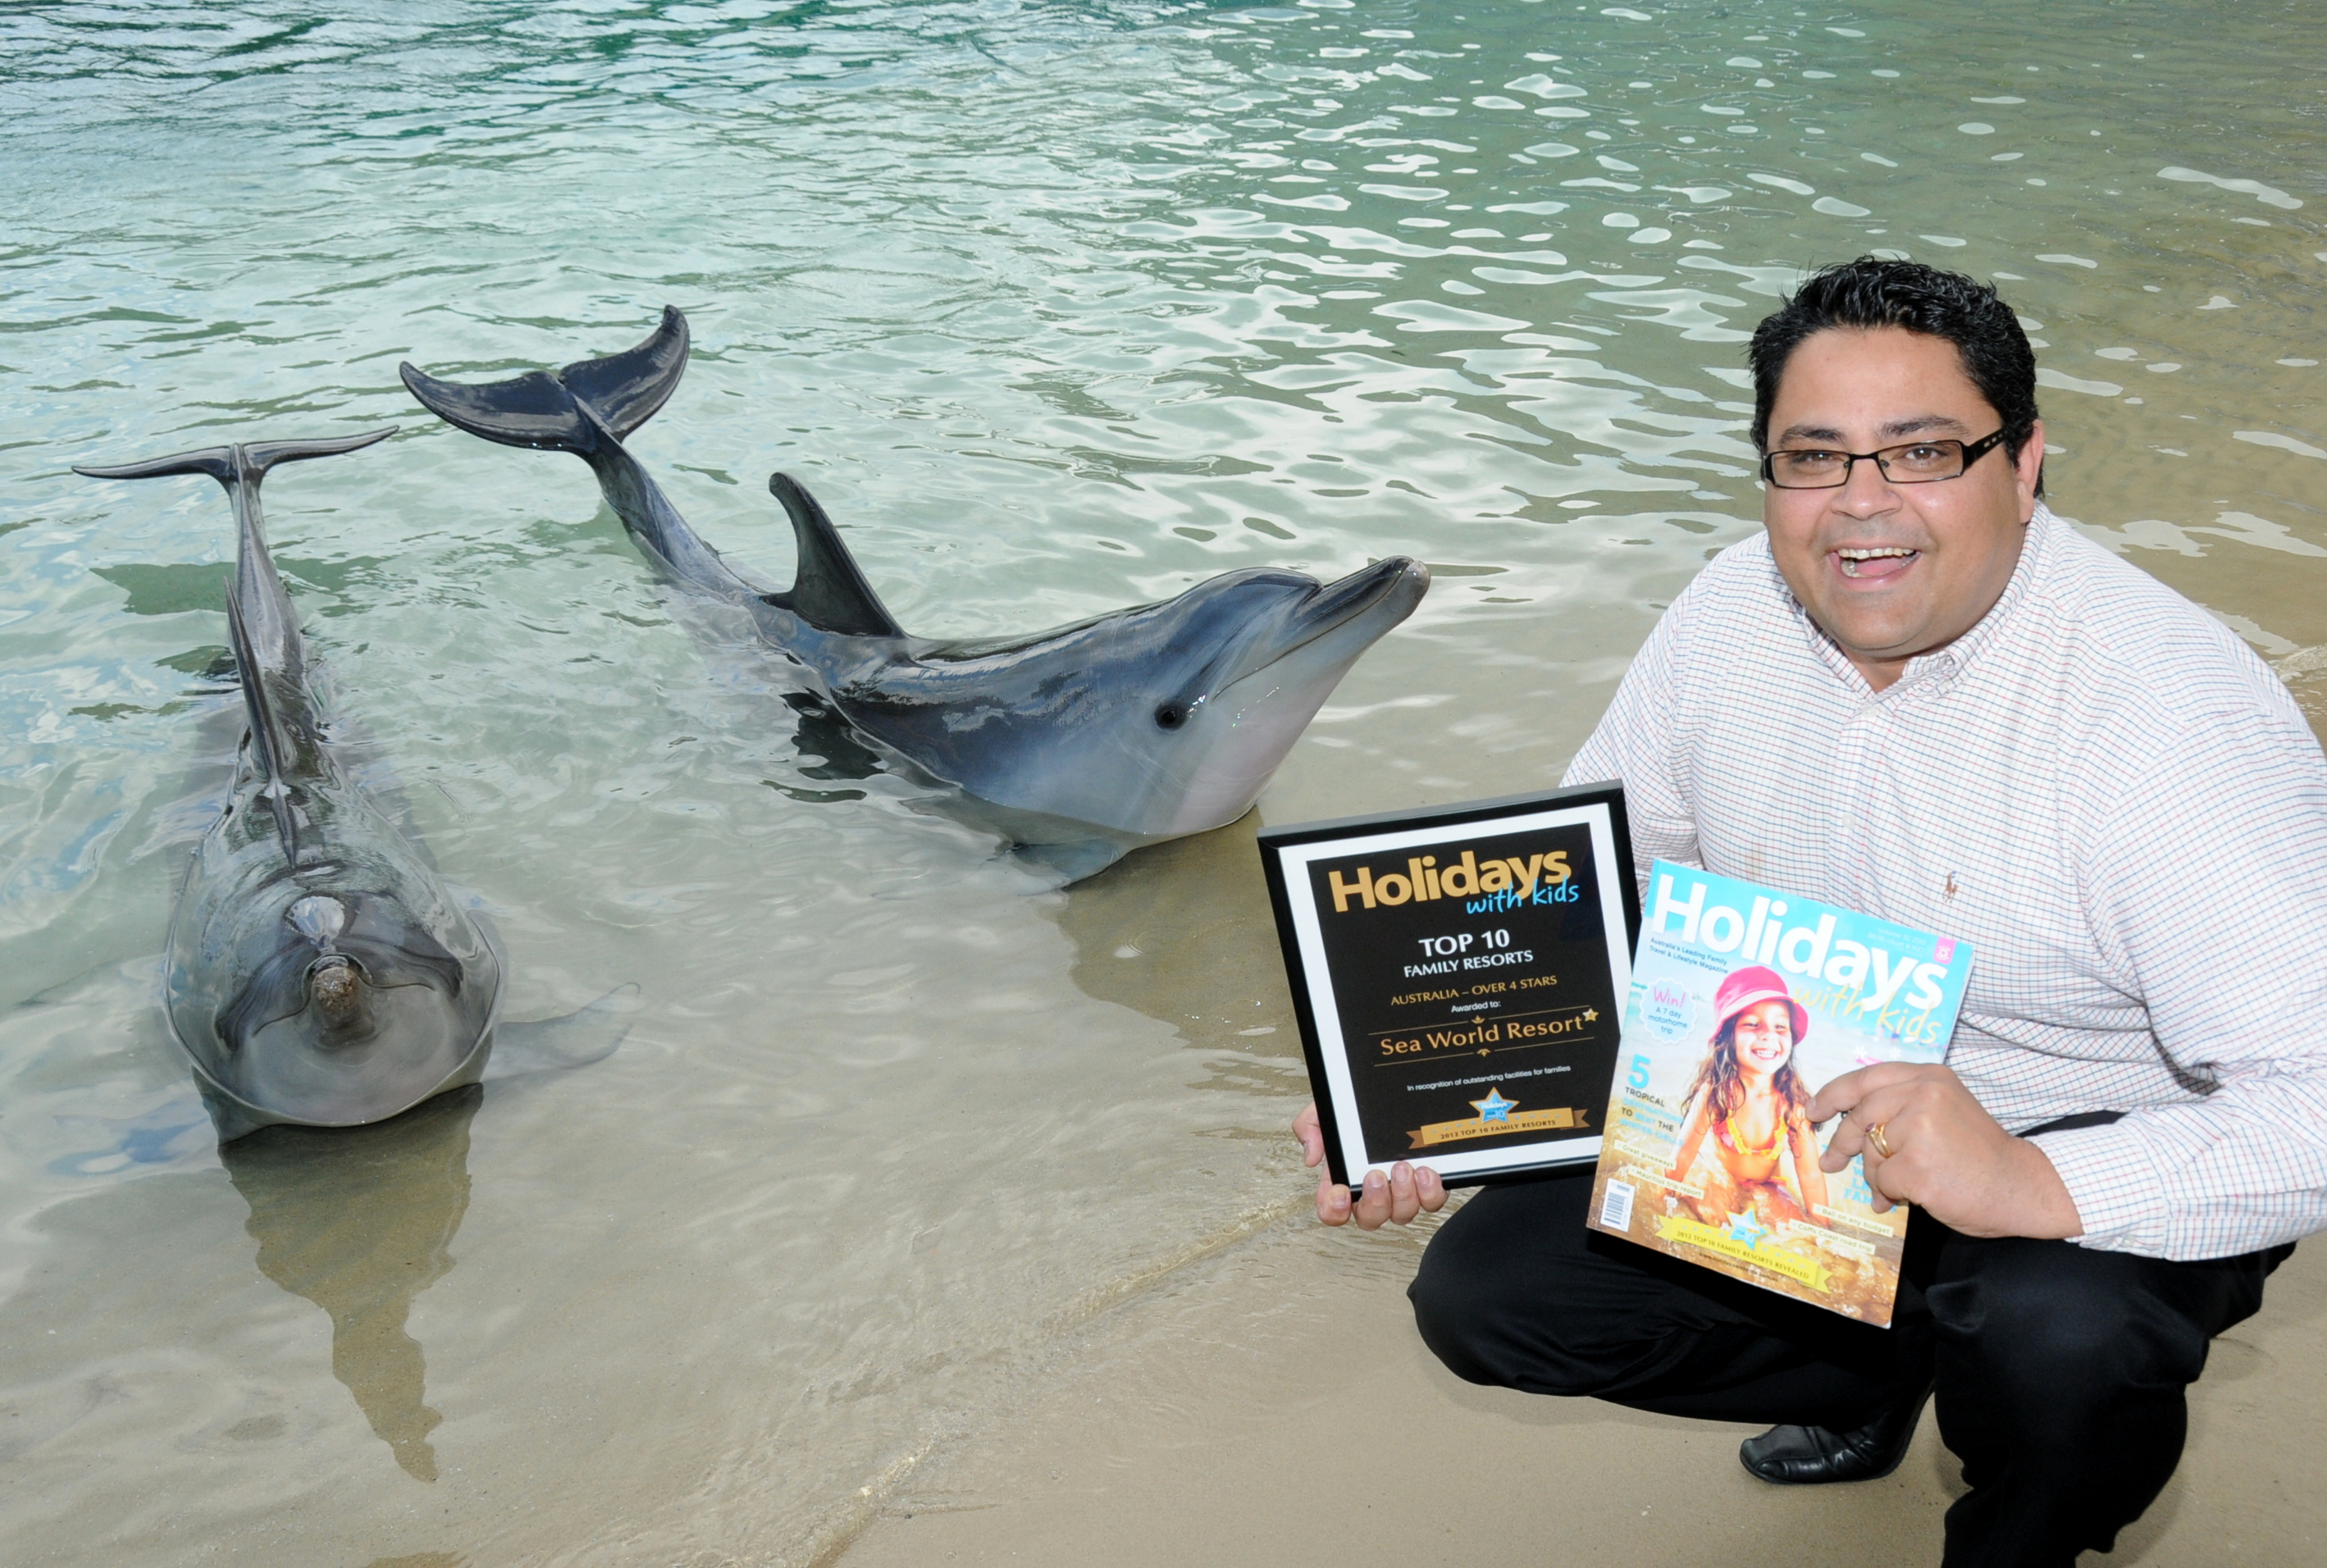 Bikash Randhawa, with dolphin friends at Sea World, has gone from business graduate to business leader since coming to the Gold Coast